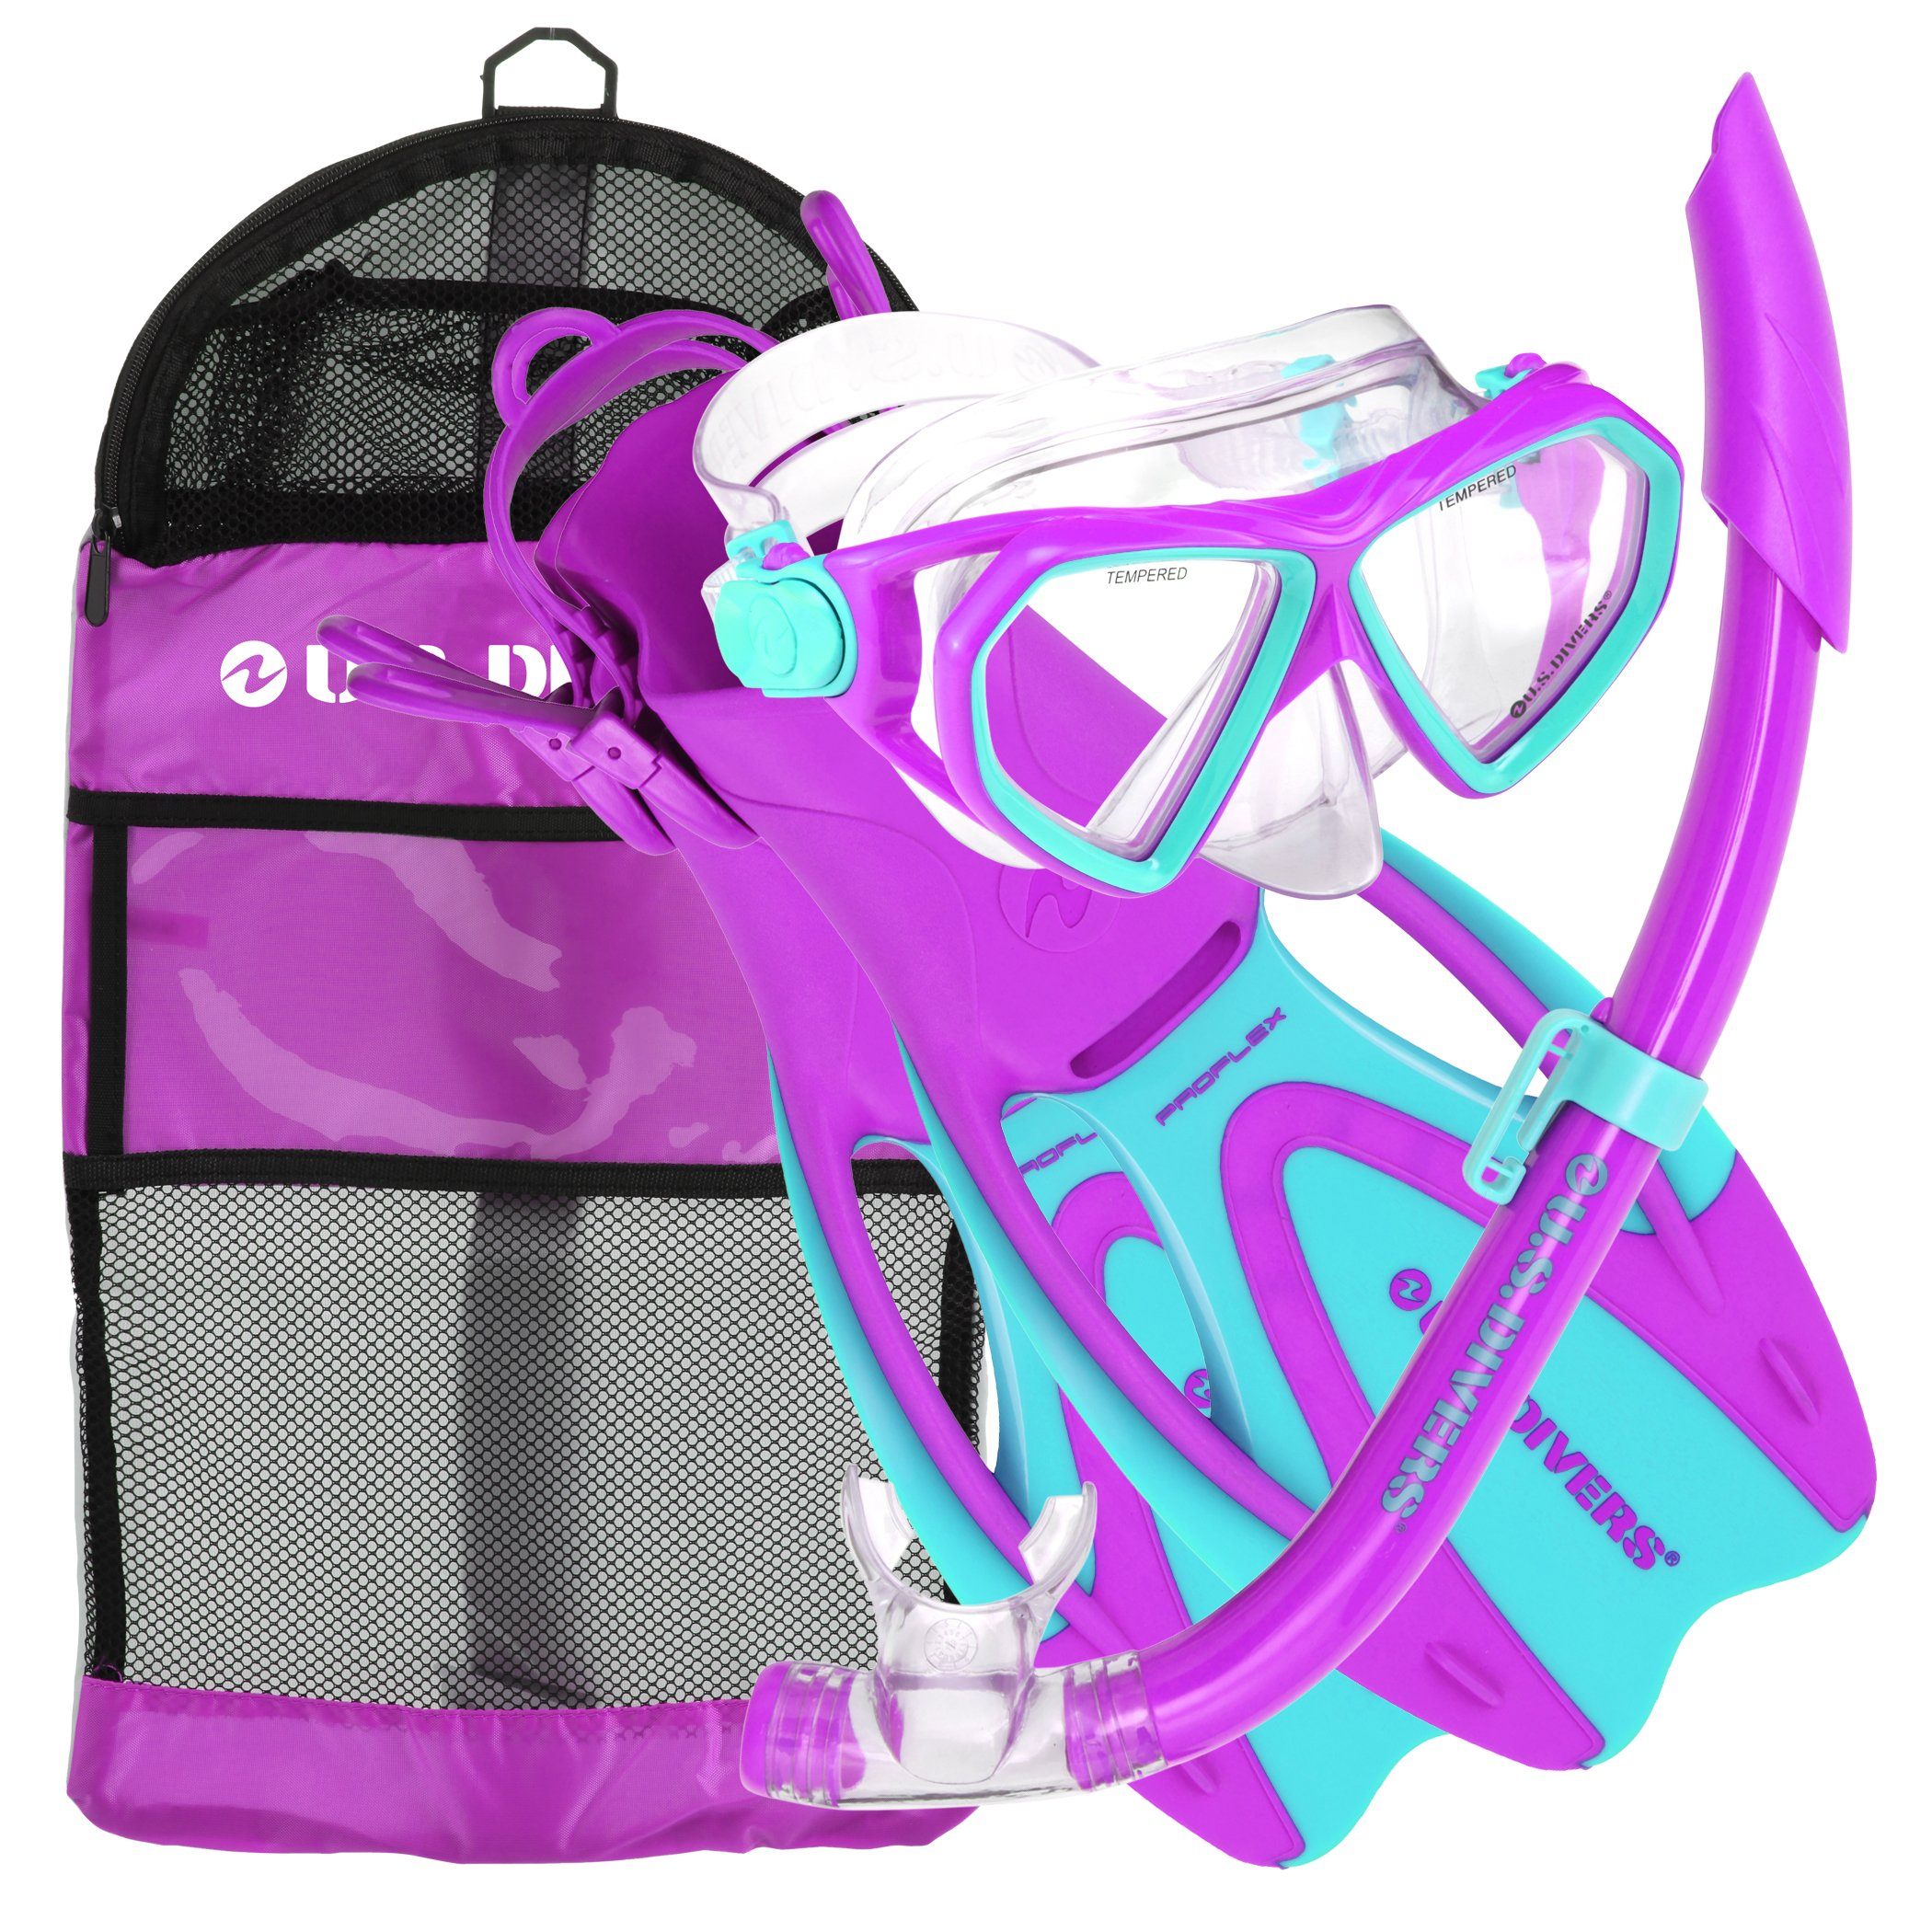 U.S. Divers Dorado JR Mask Fins Snorkel Set, Fun Purple, Large by U.S. Divers